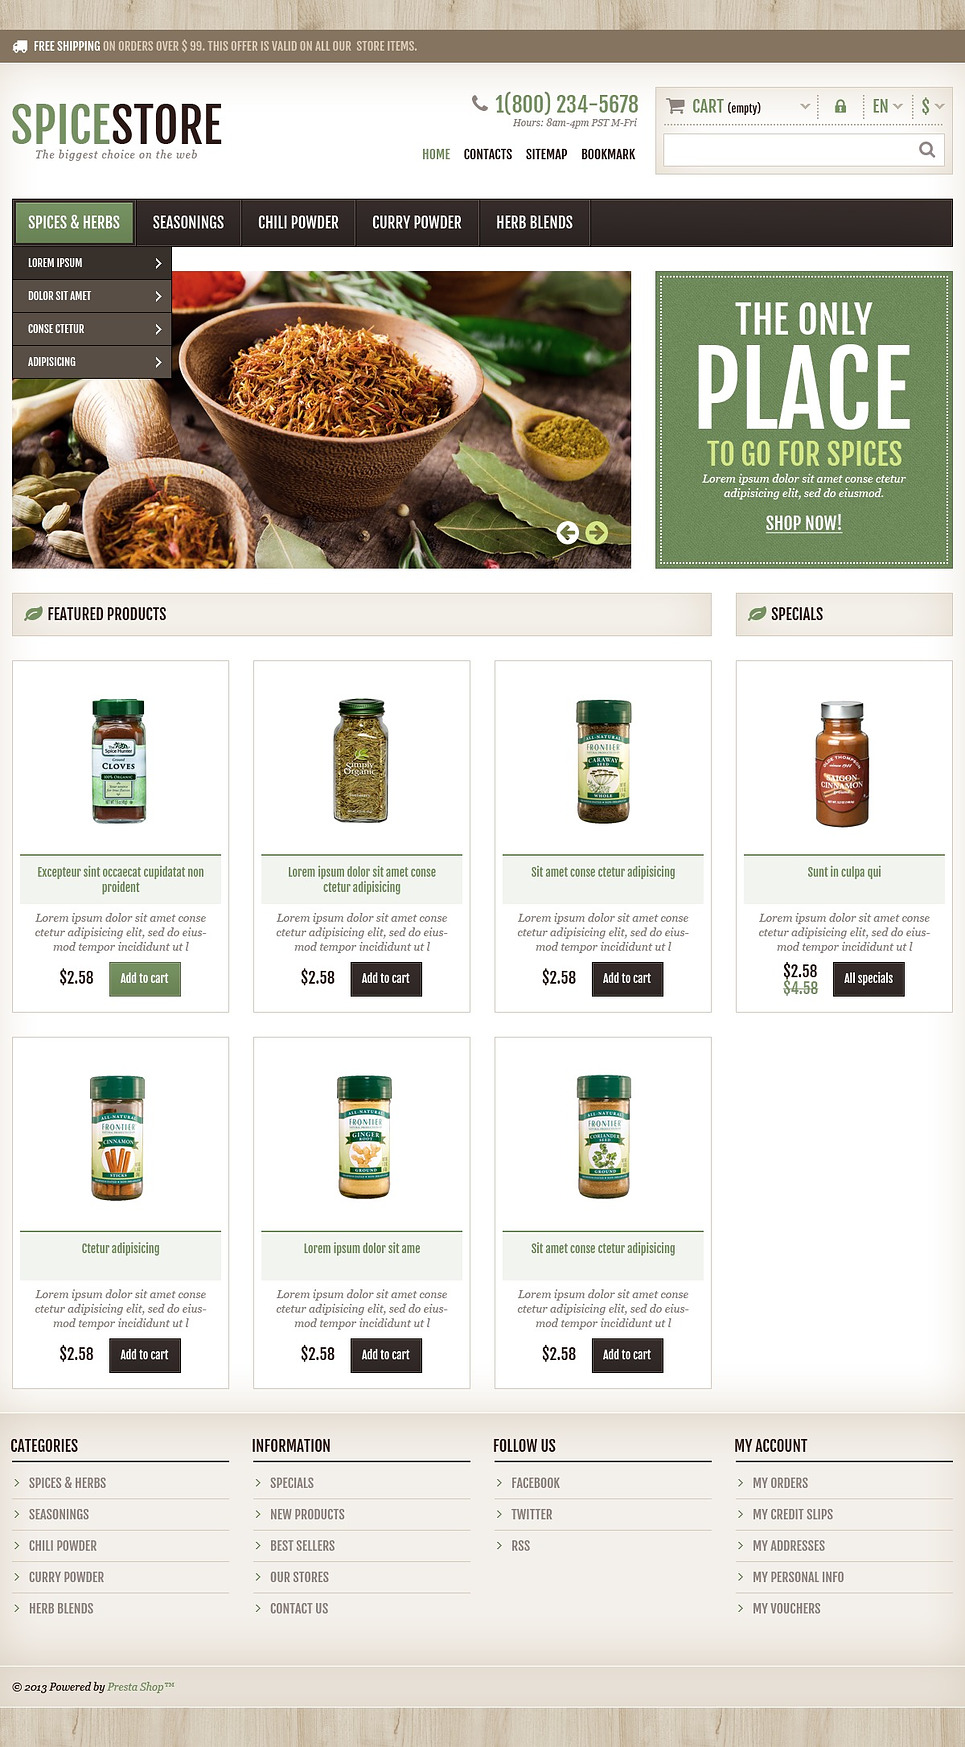 13+ Spice Shop Ecommerce Website Templates (Spice Store